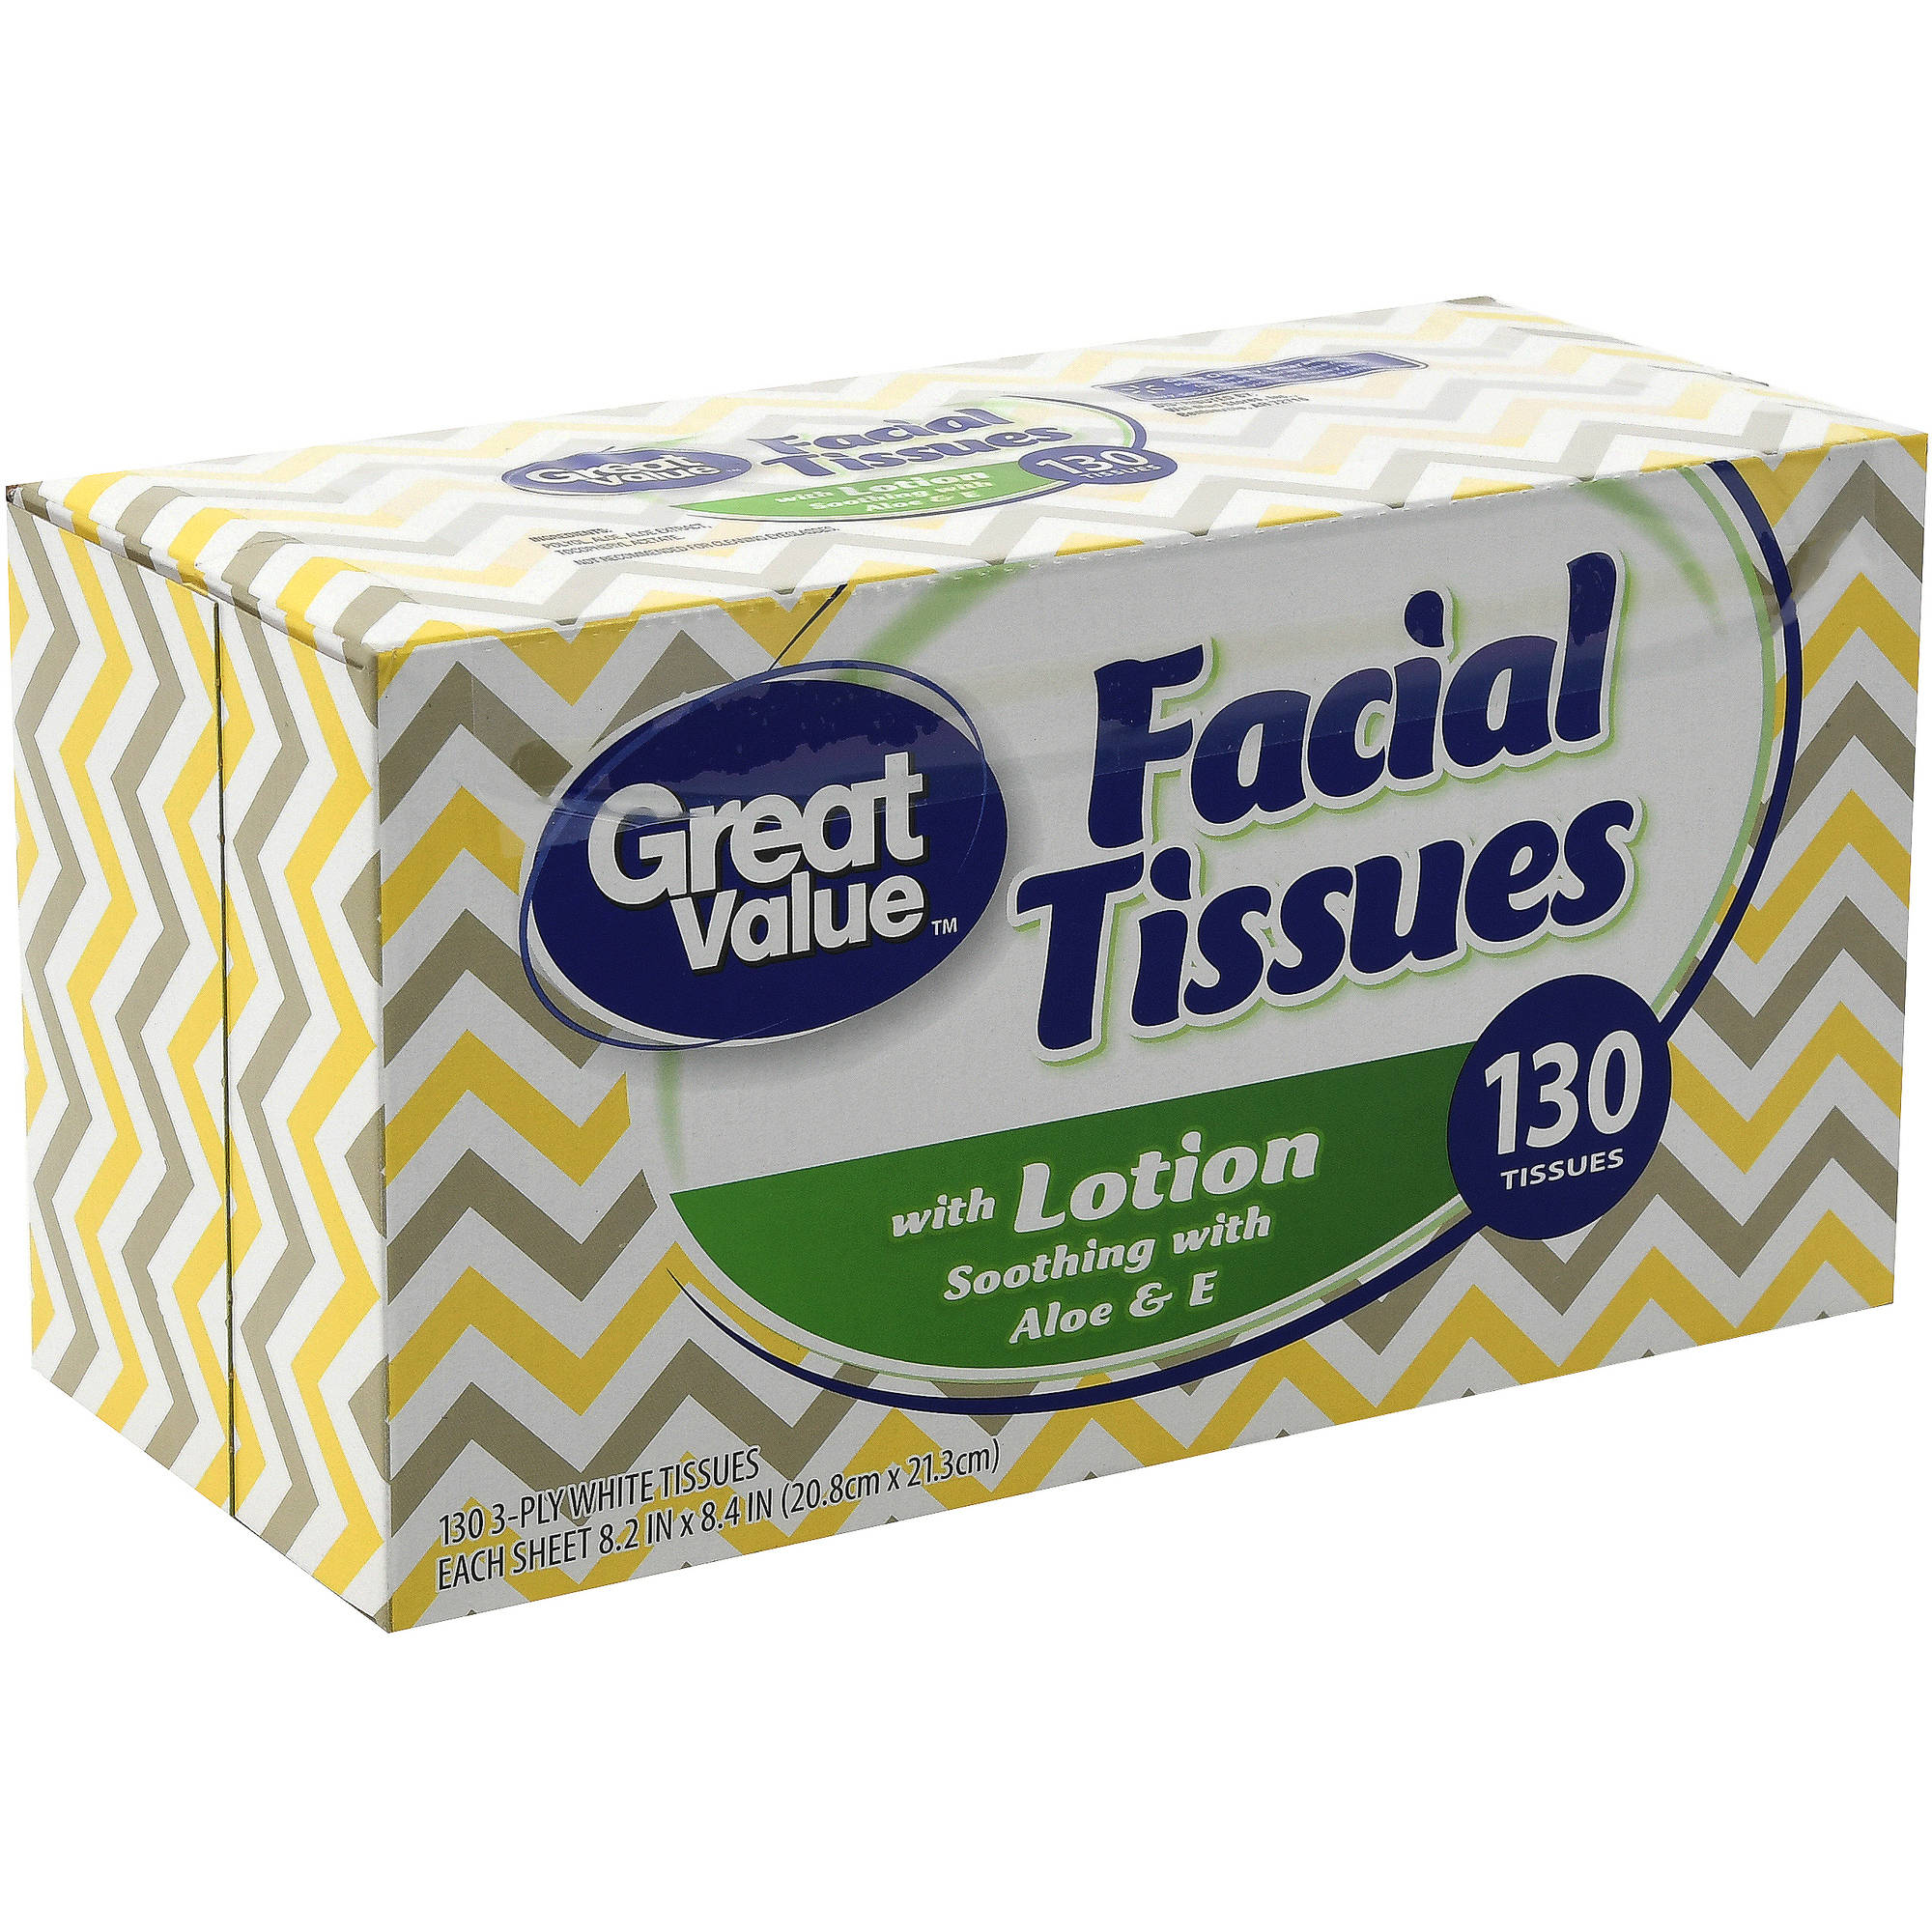 Great Value Facial Tissues with Lotion, 130 sheets